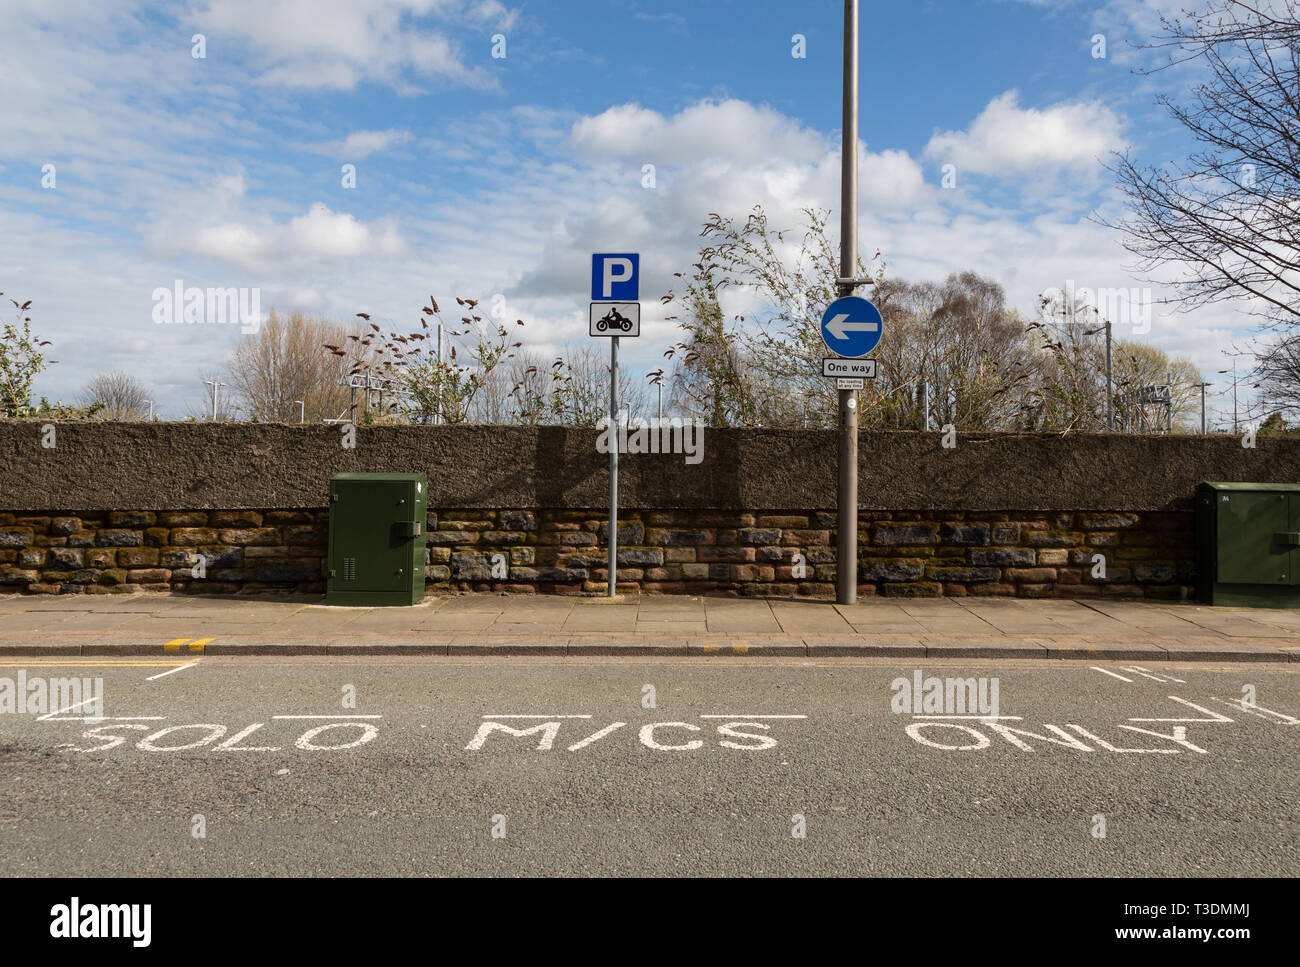 Roadside parking for solo motorcycles St Helens Merseyside March 2019 Stock Photo